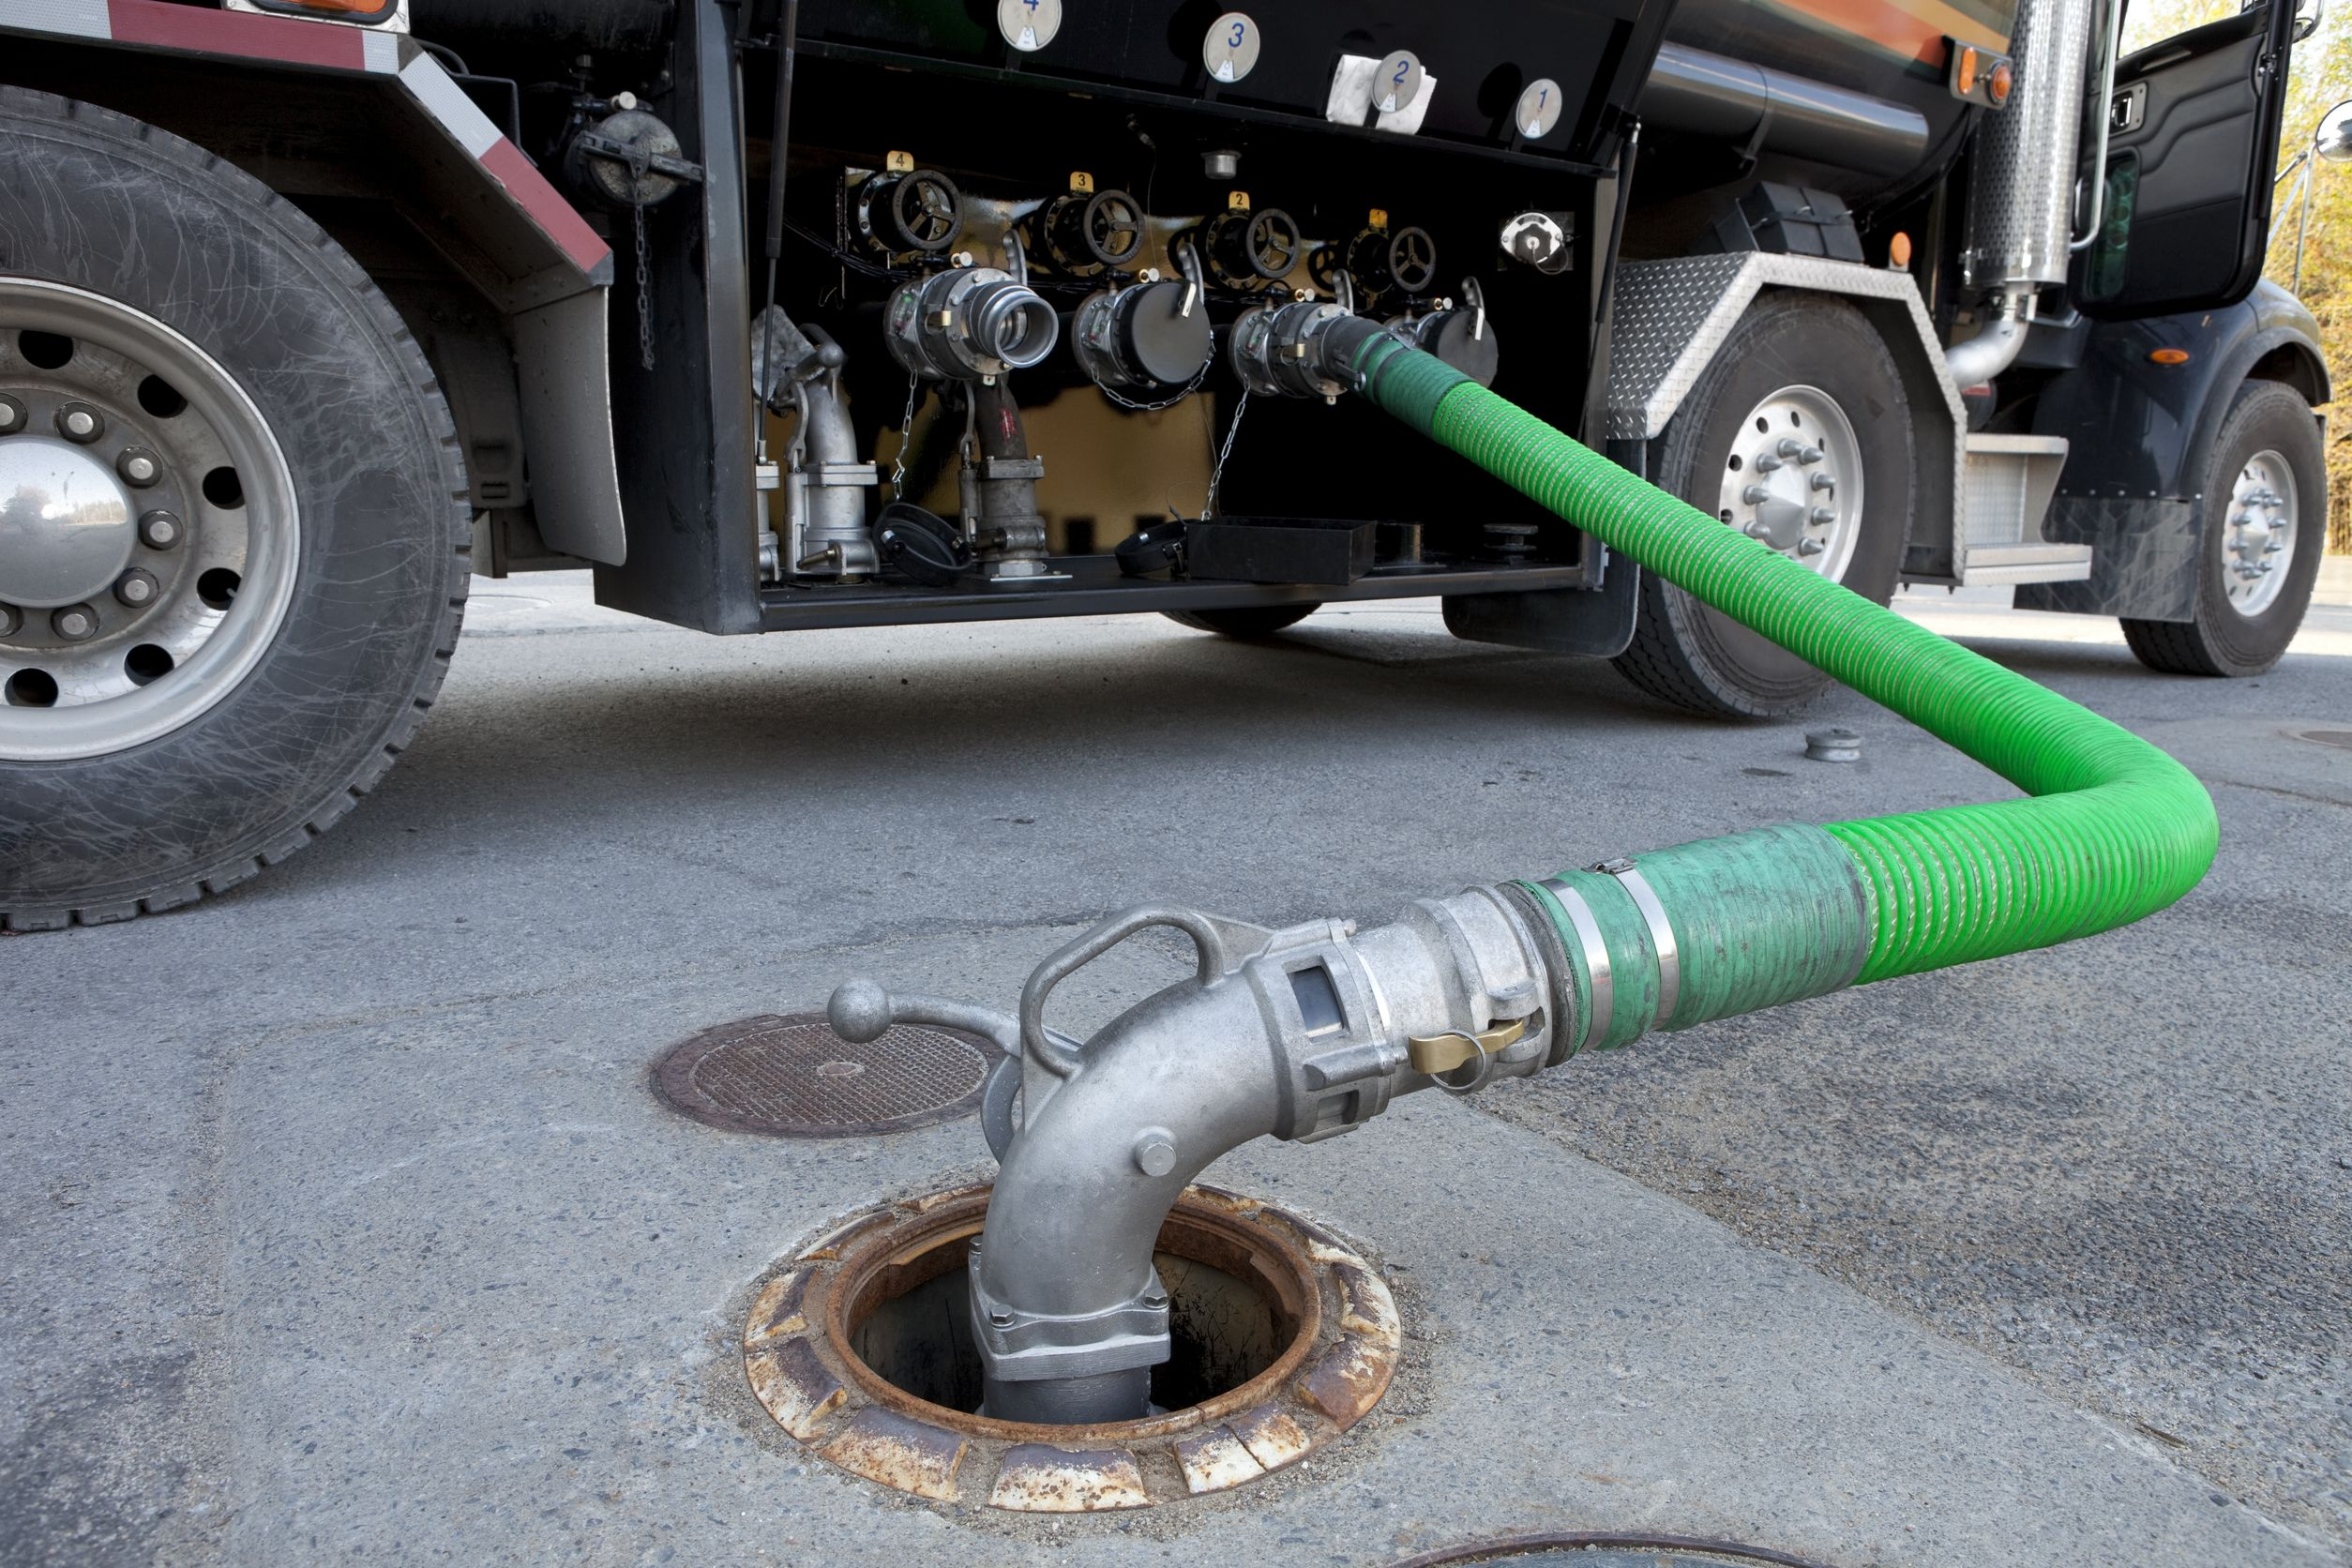 Benefits of Hiring Professionals For Your Septic Pumping in Haines City FL